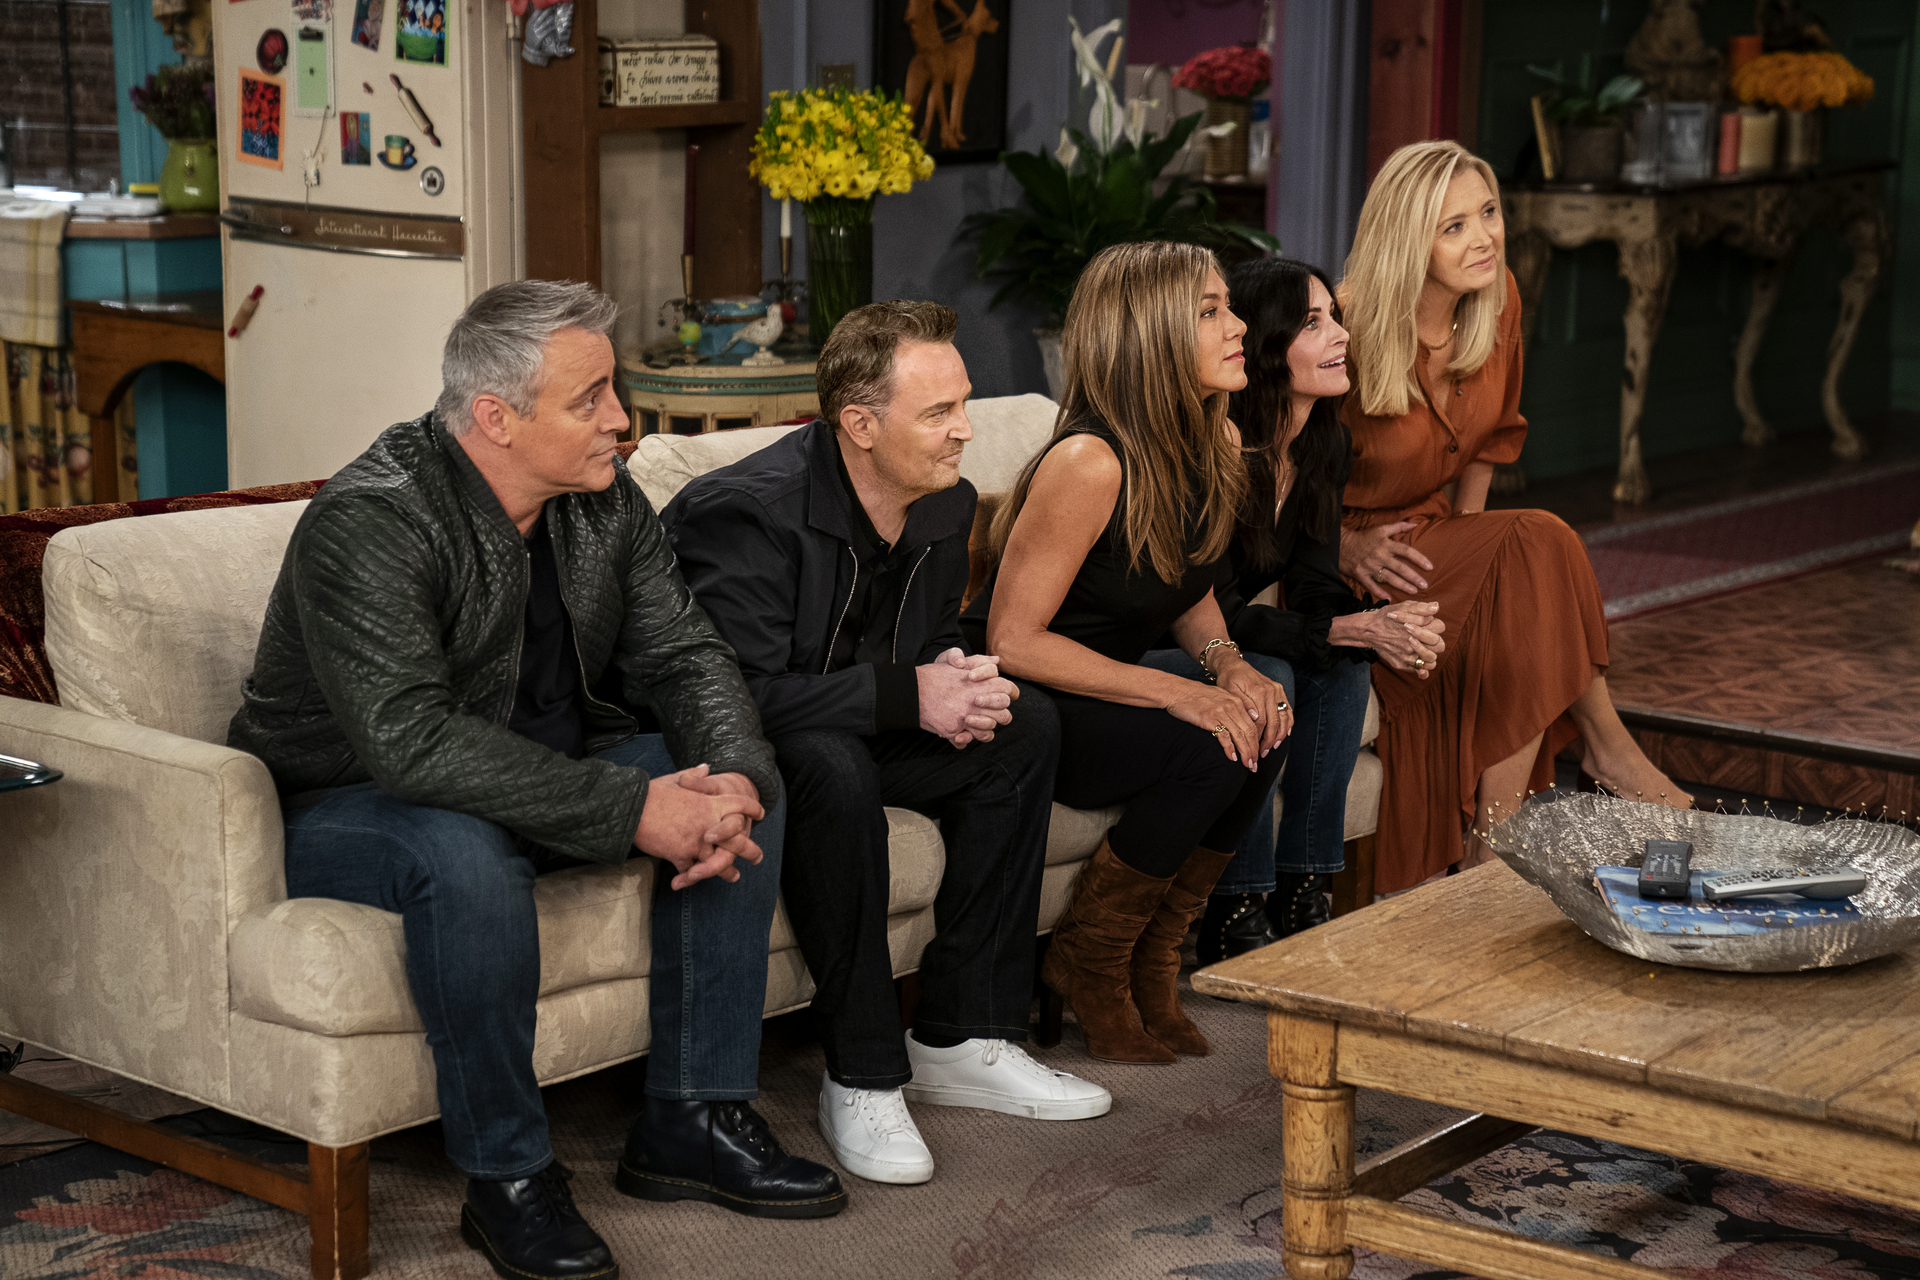 The cast of 'Friends' gets ready for a round of trivia in the HBO Max reunion special (Photo: Terence Patrick/HBO Max)